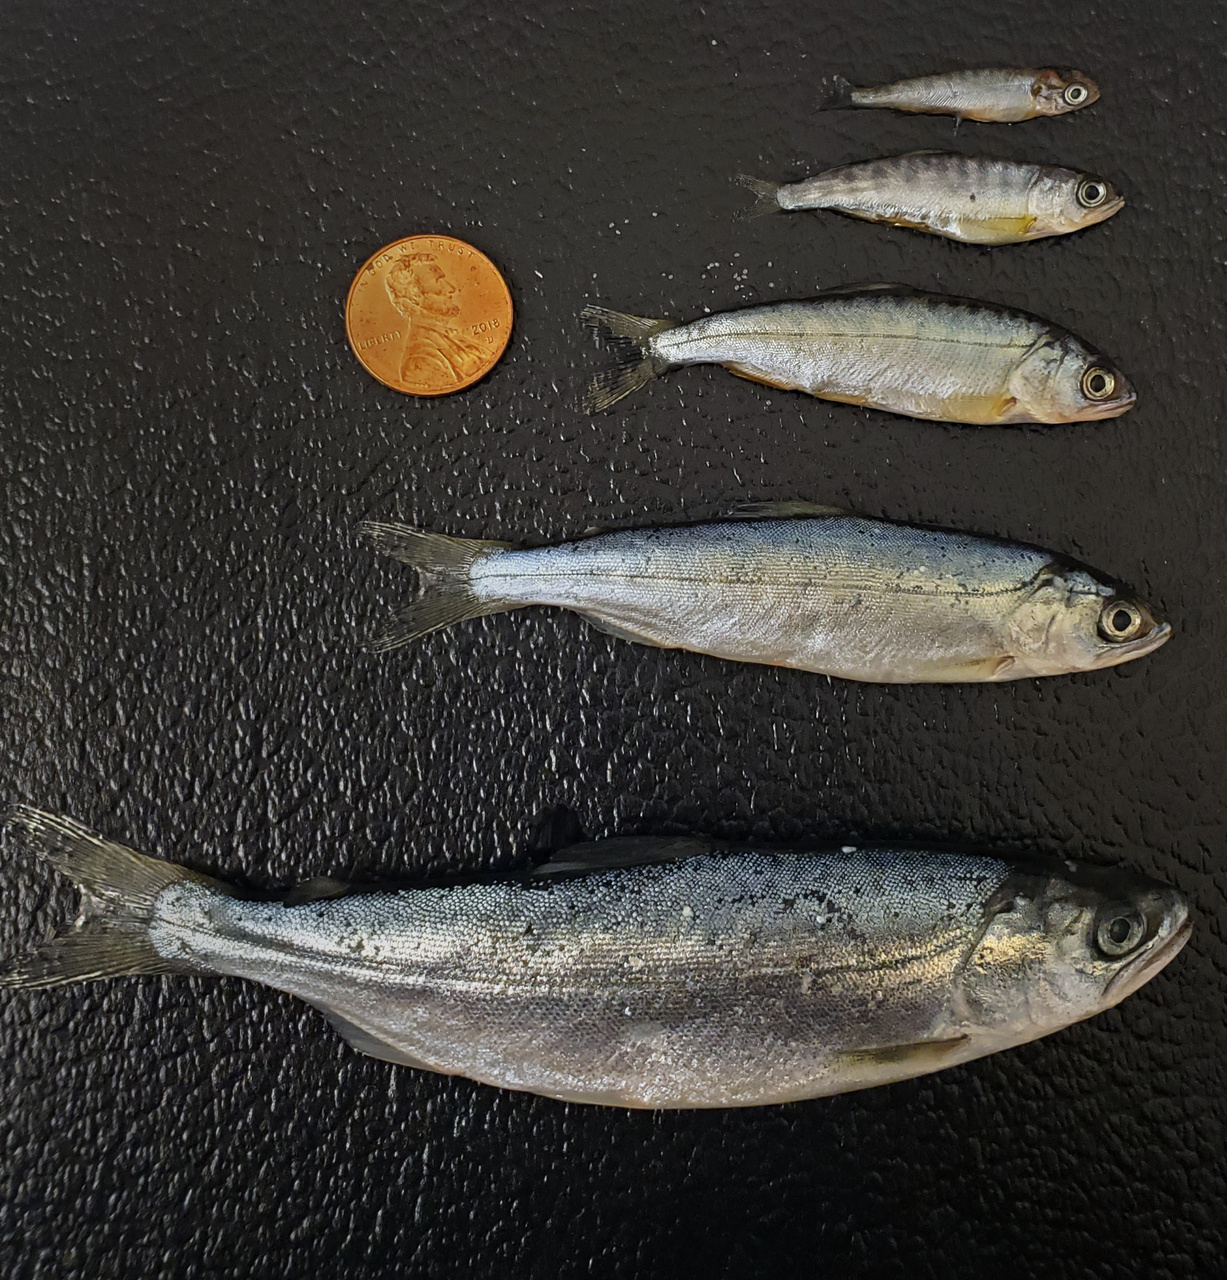 Display of multiple chinook salmon to show life history diversity.